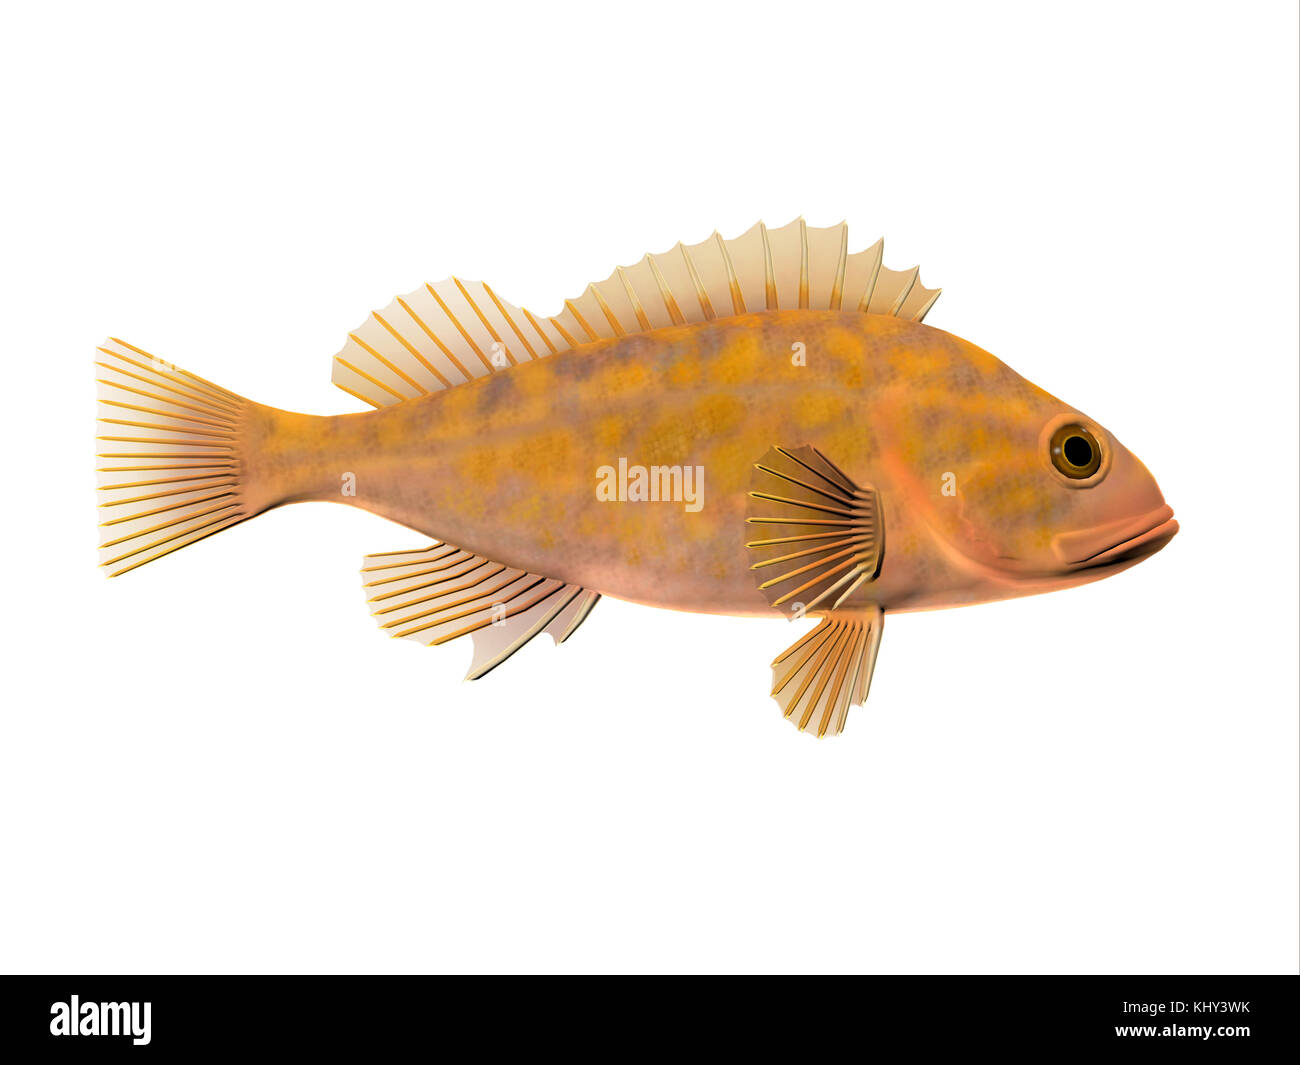 Canary Rockfish - Canary Rockfish spend most of the time among rocky crevices and boulders in the Pacific ocean - Stock Image